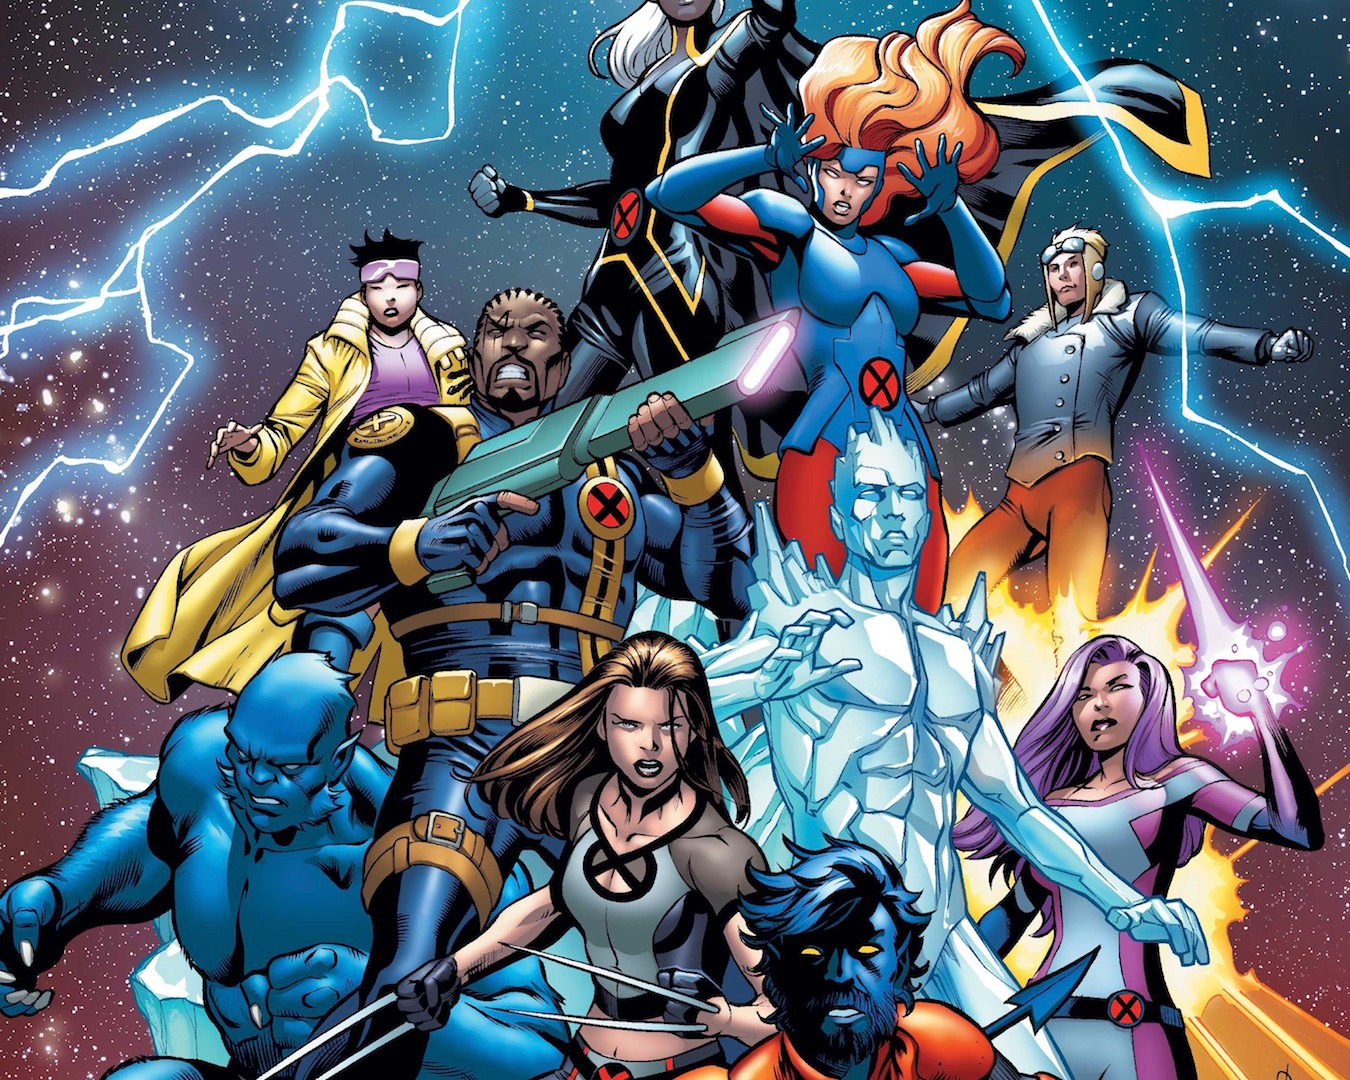 '2019 is gonna change everything for the X-Men' - An interview with X-Men Group Editor Jordan D. White